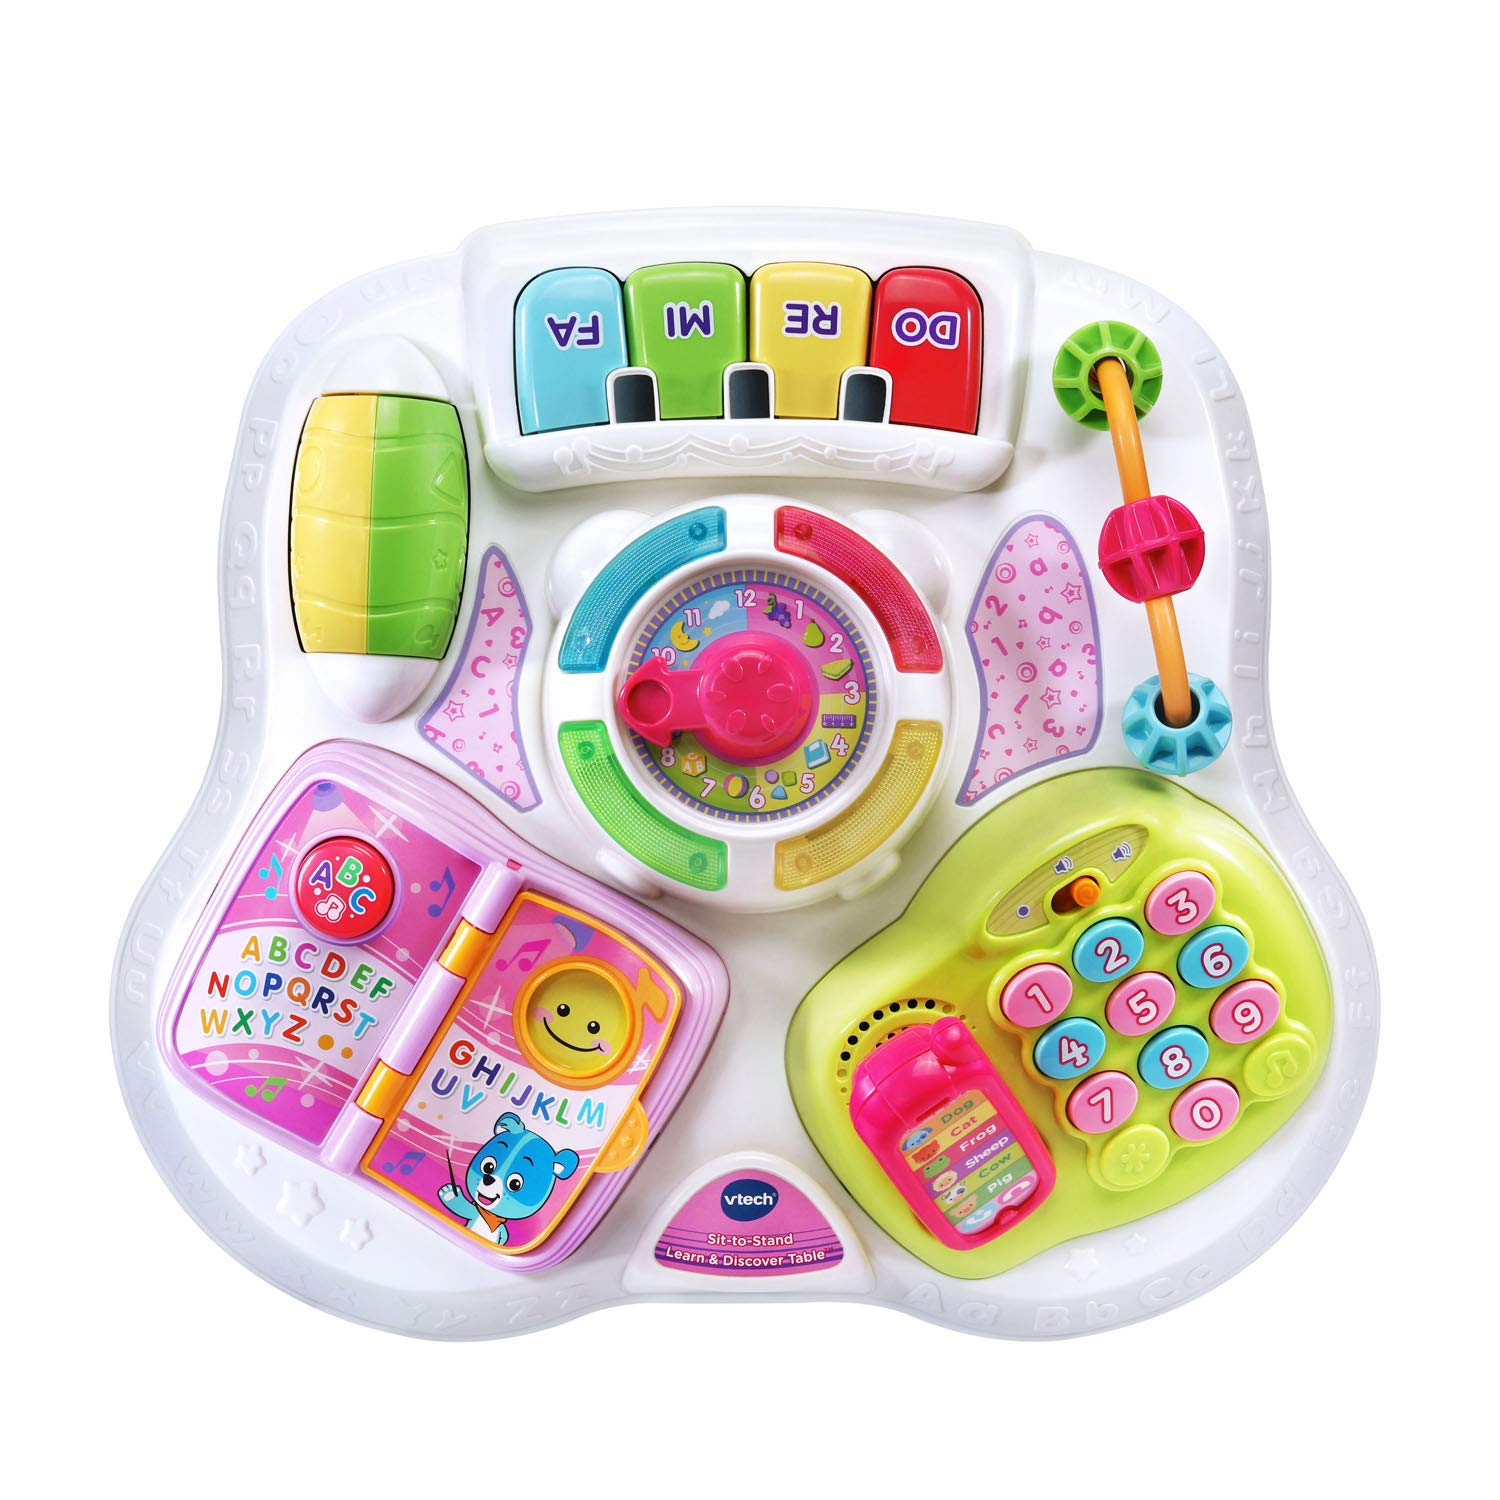 VTech Sit-To-Stand Learn & Discover Table, Pink by VTech (Image #3)